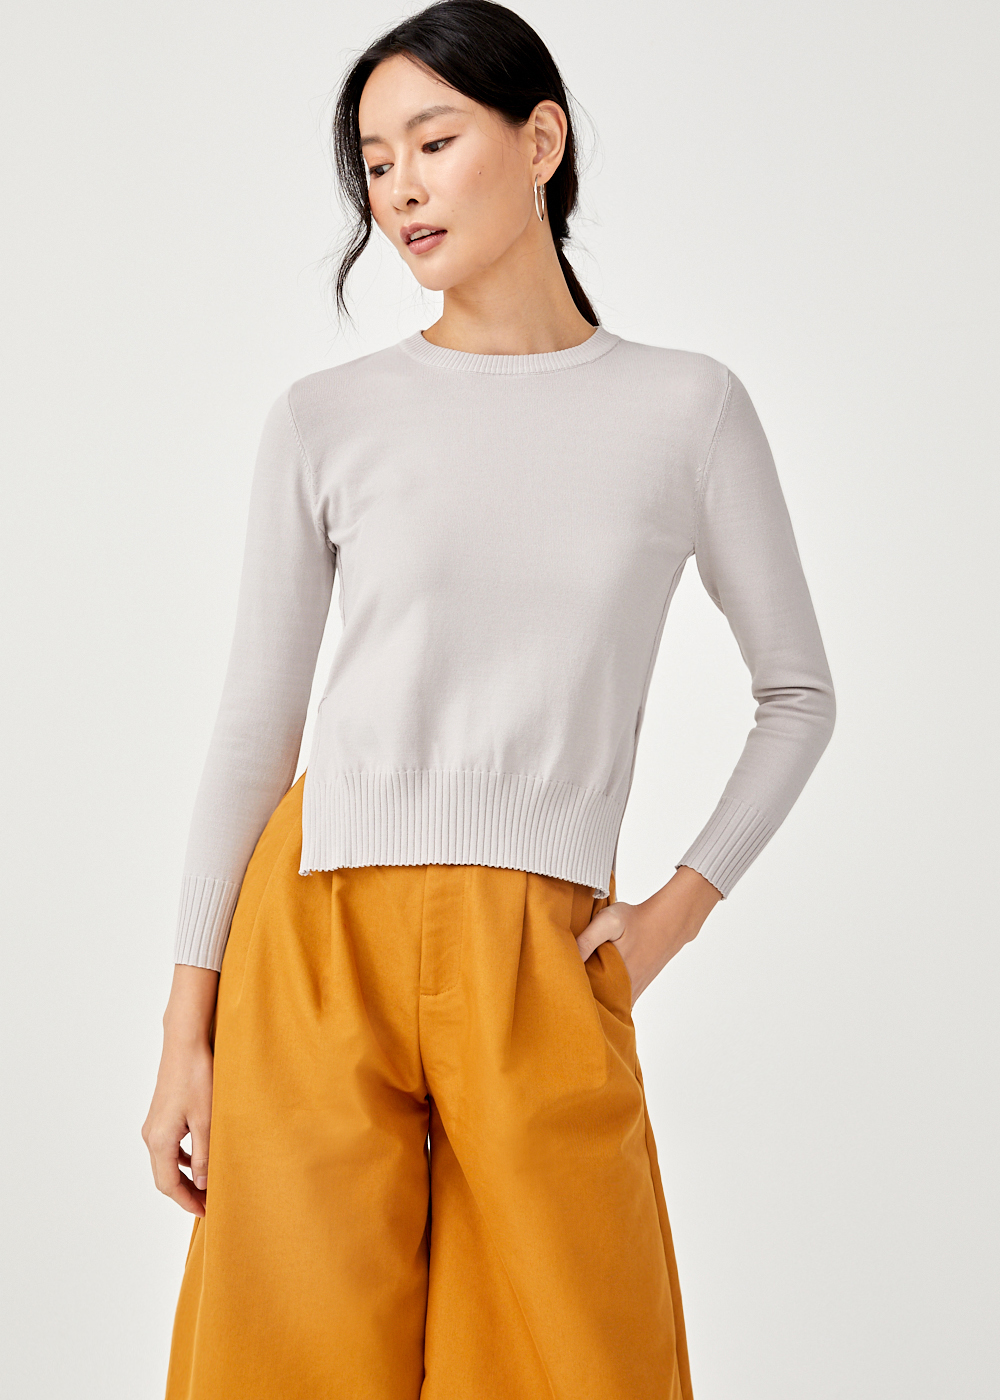 Xael Slit Hem Knit Sweater